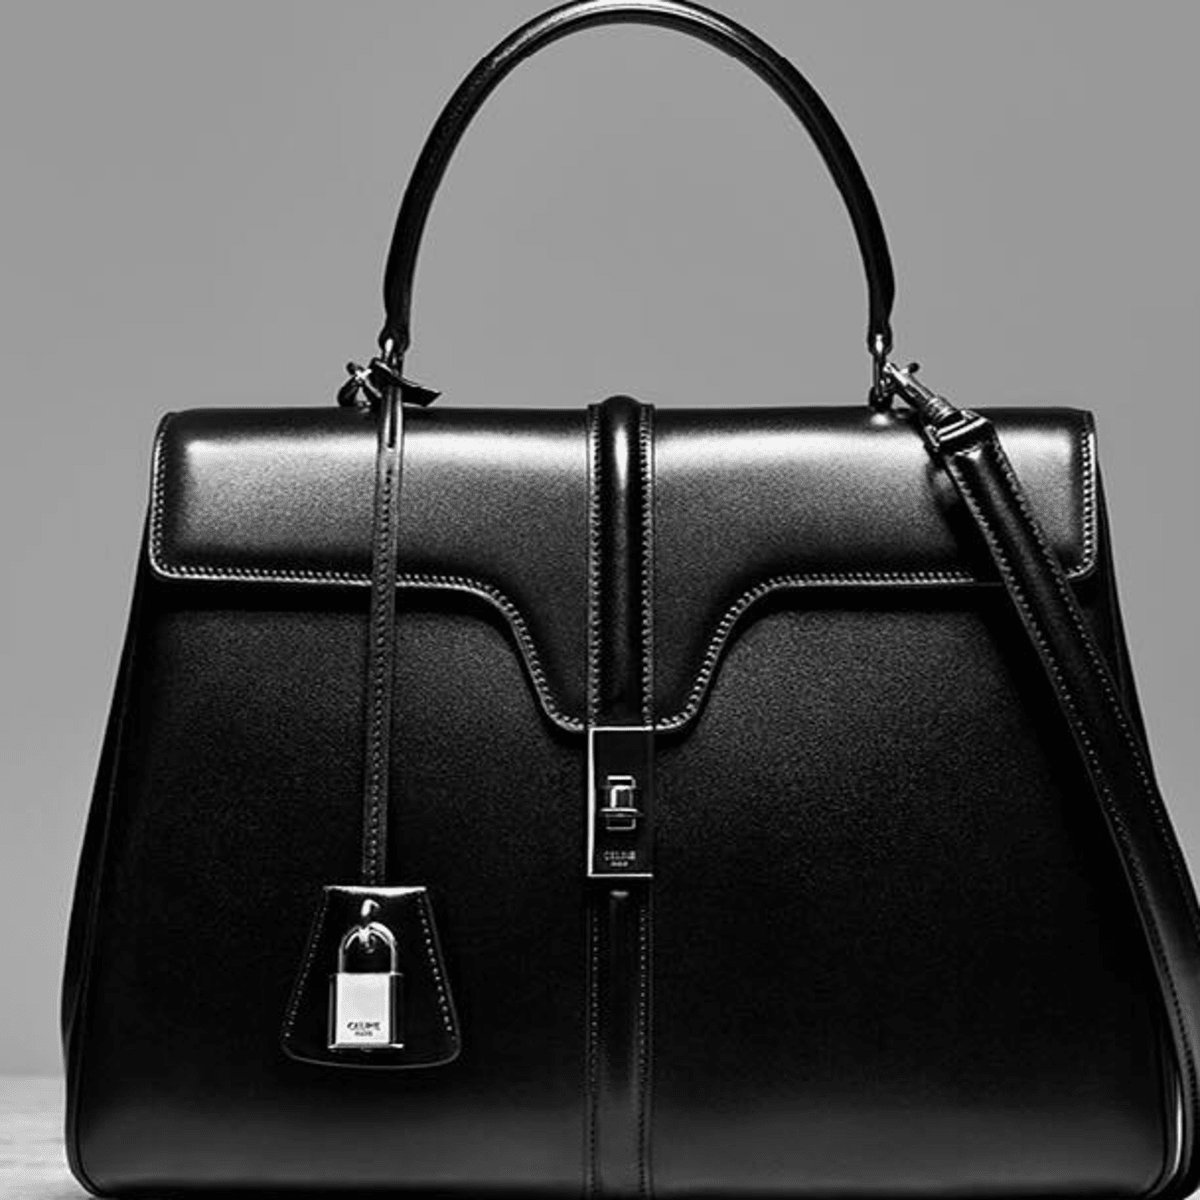 Hedi Slimane Revealed His First Handbag